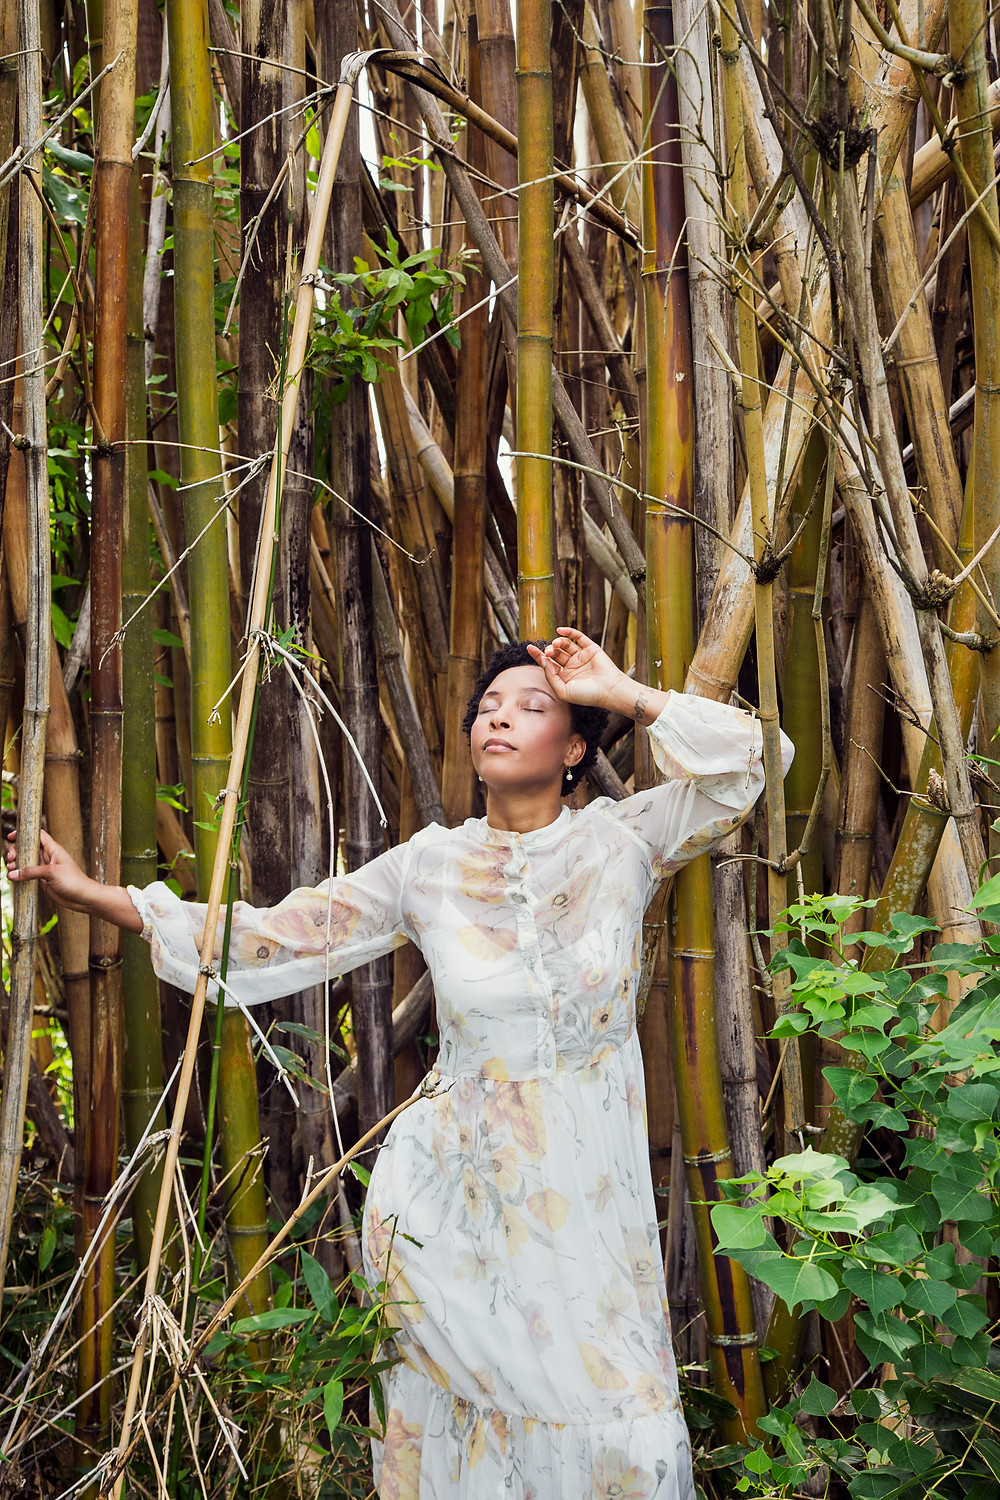 Woman reflecting in bamboo tree stalks